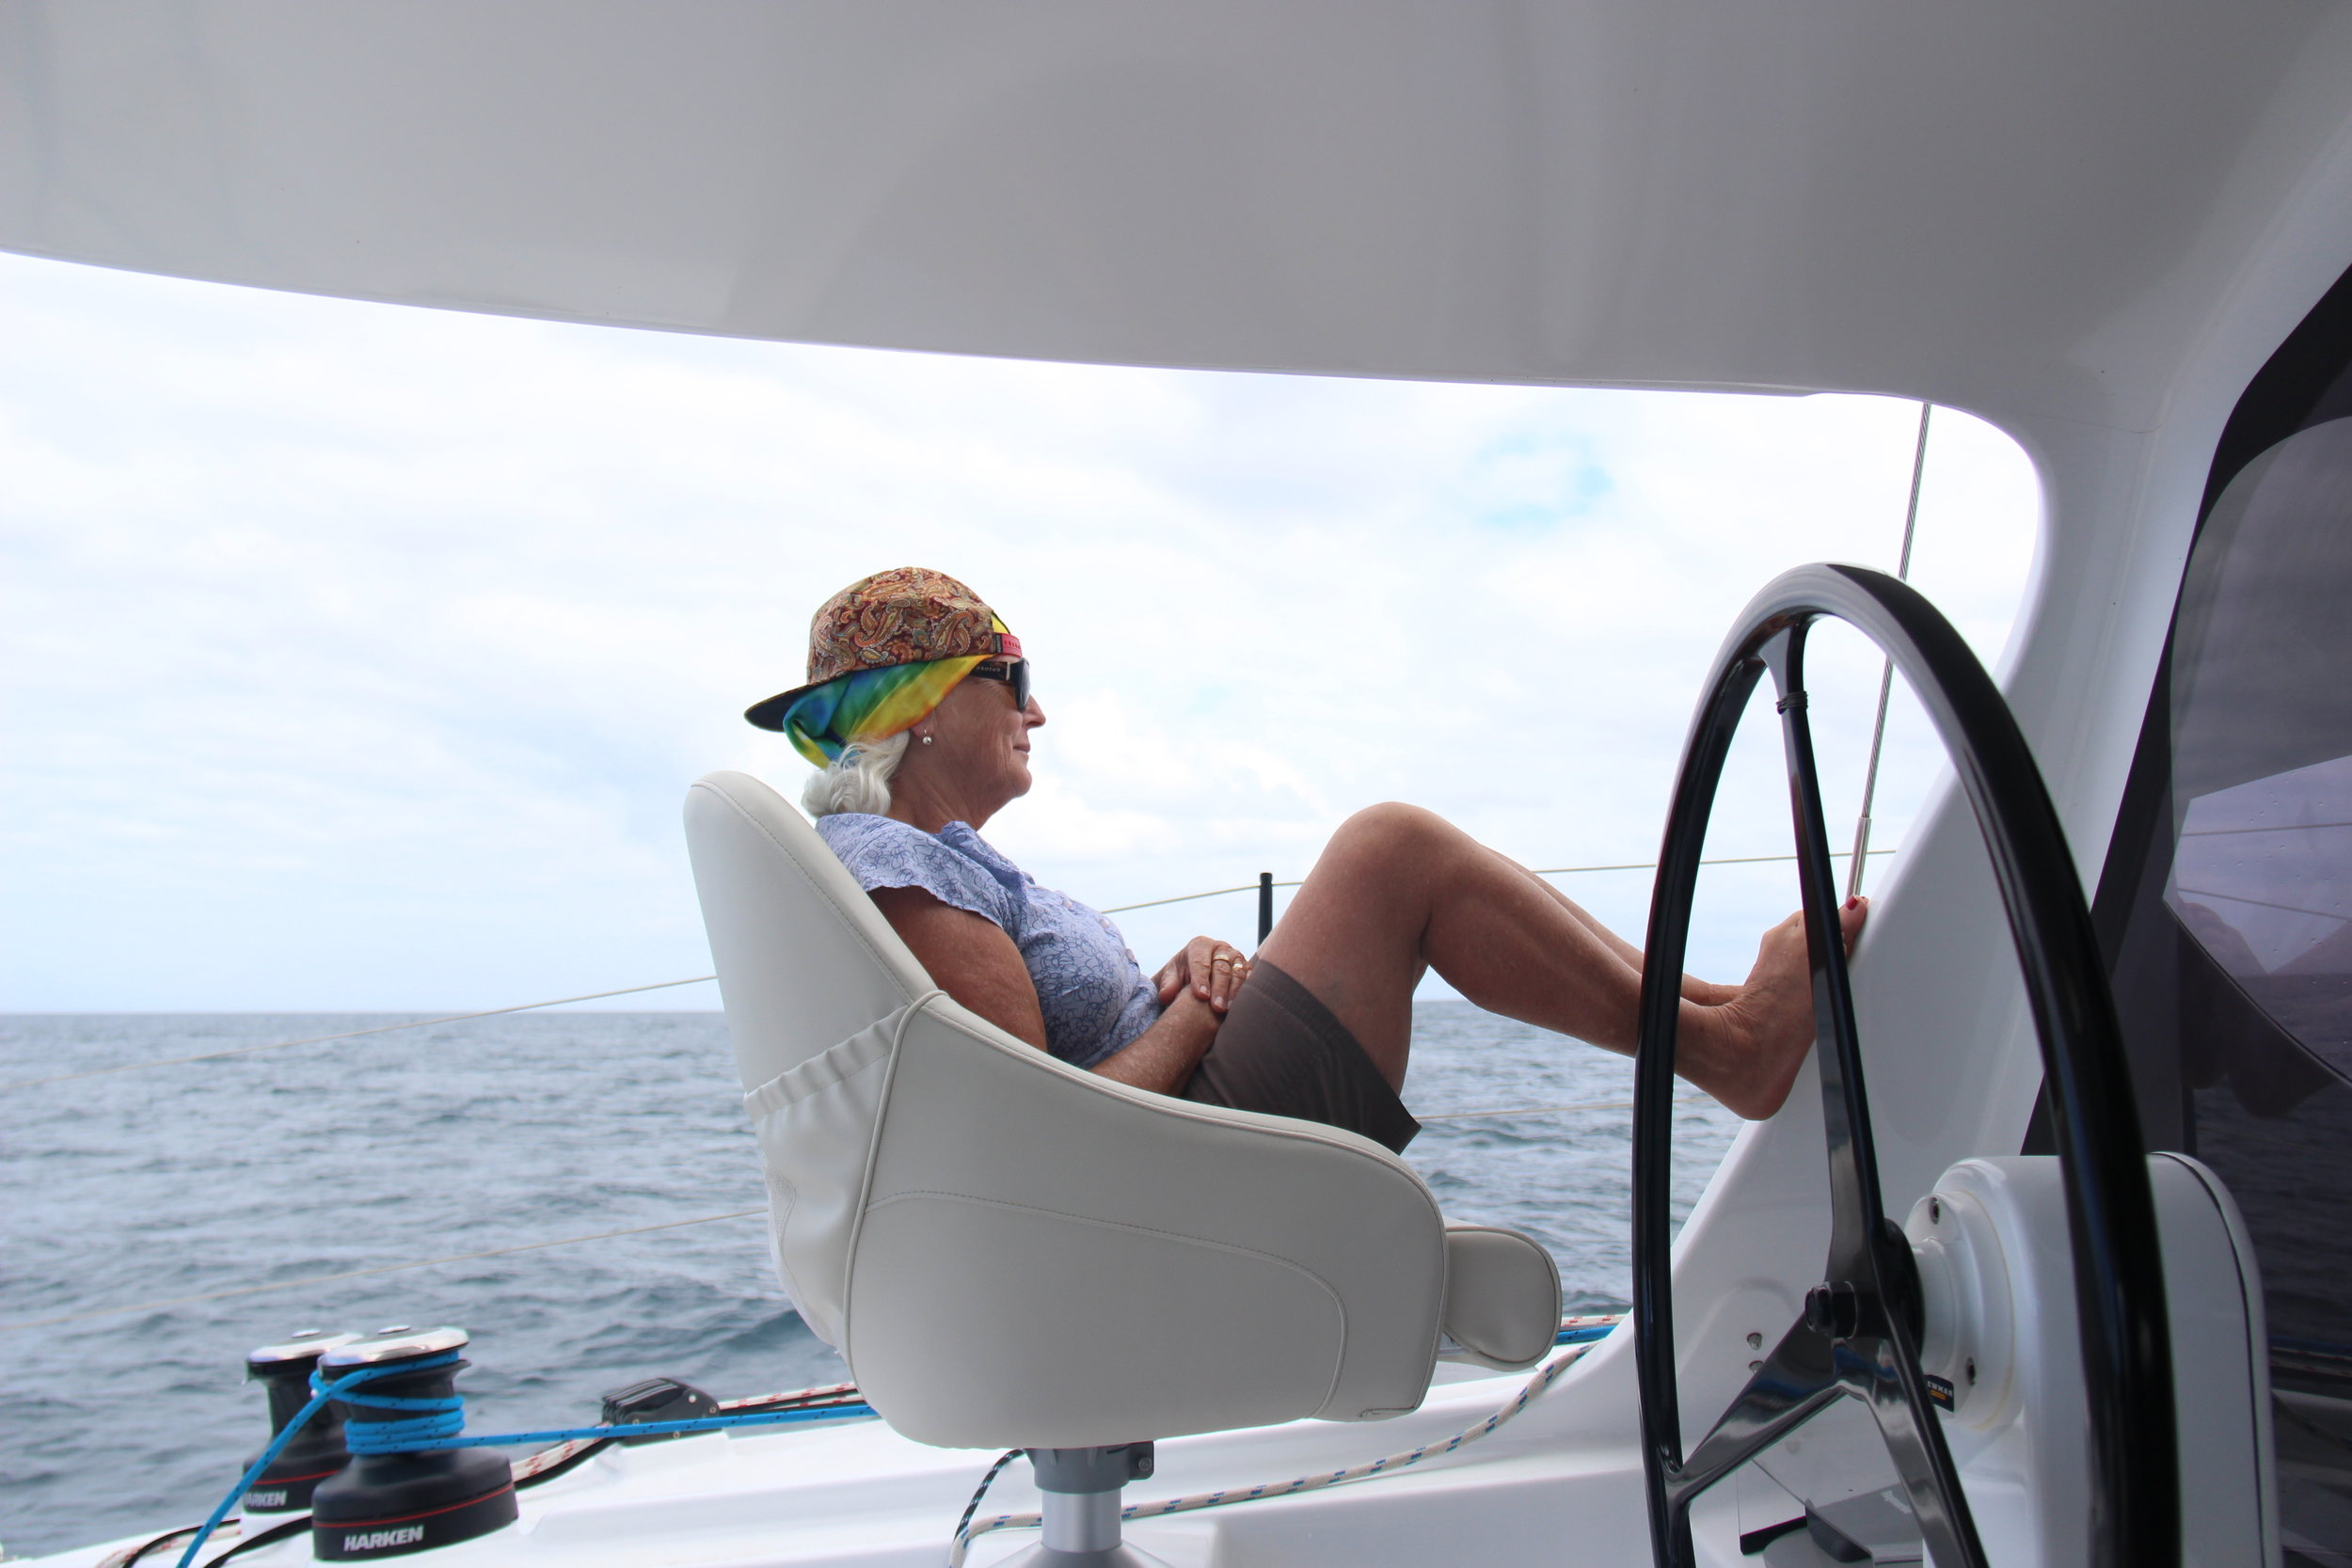 Lois sporting a look that Andy has given her... #boatlife.